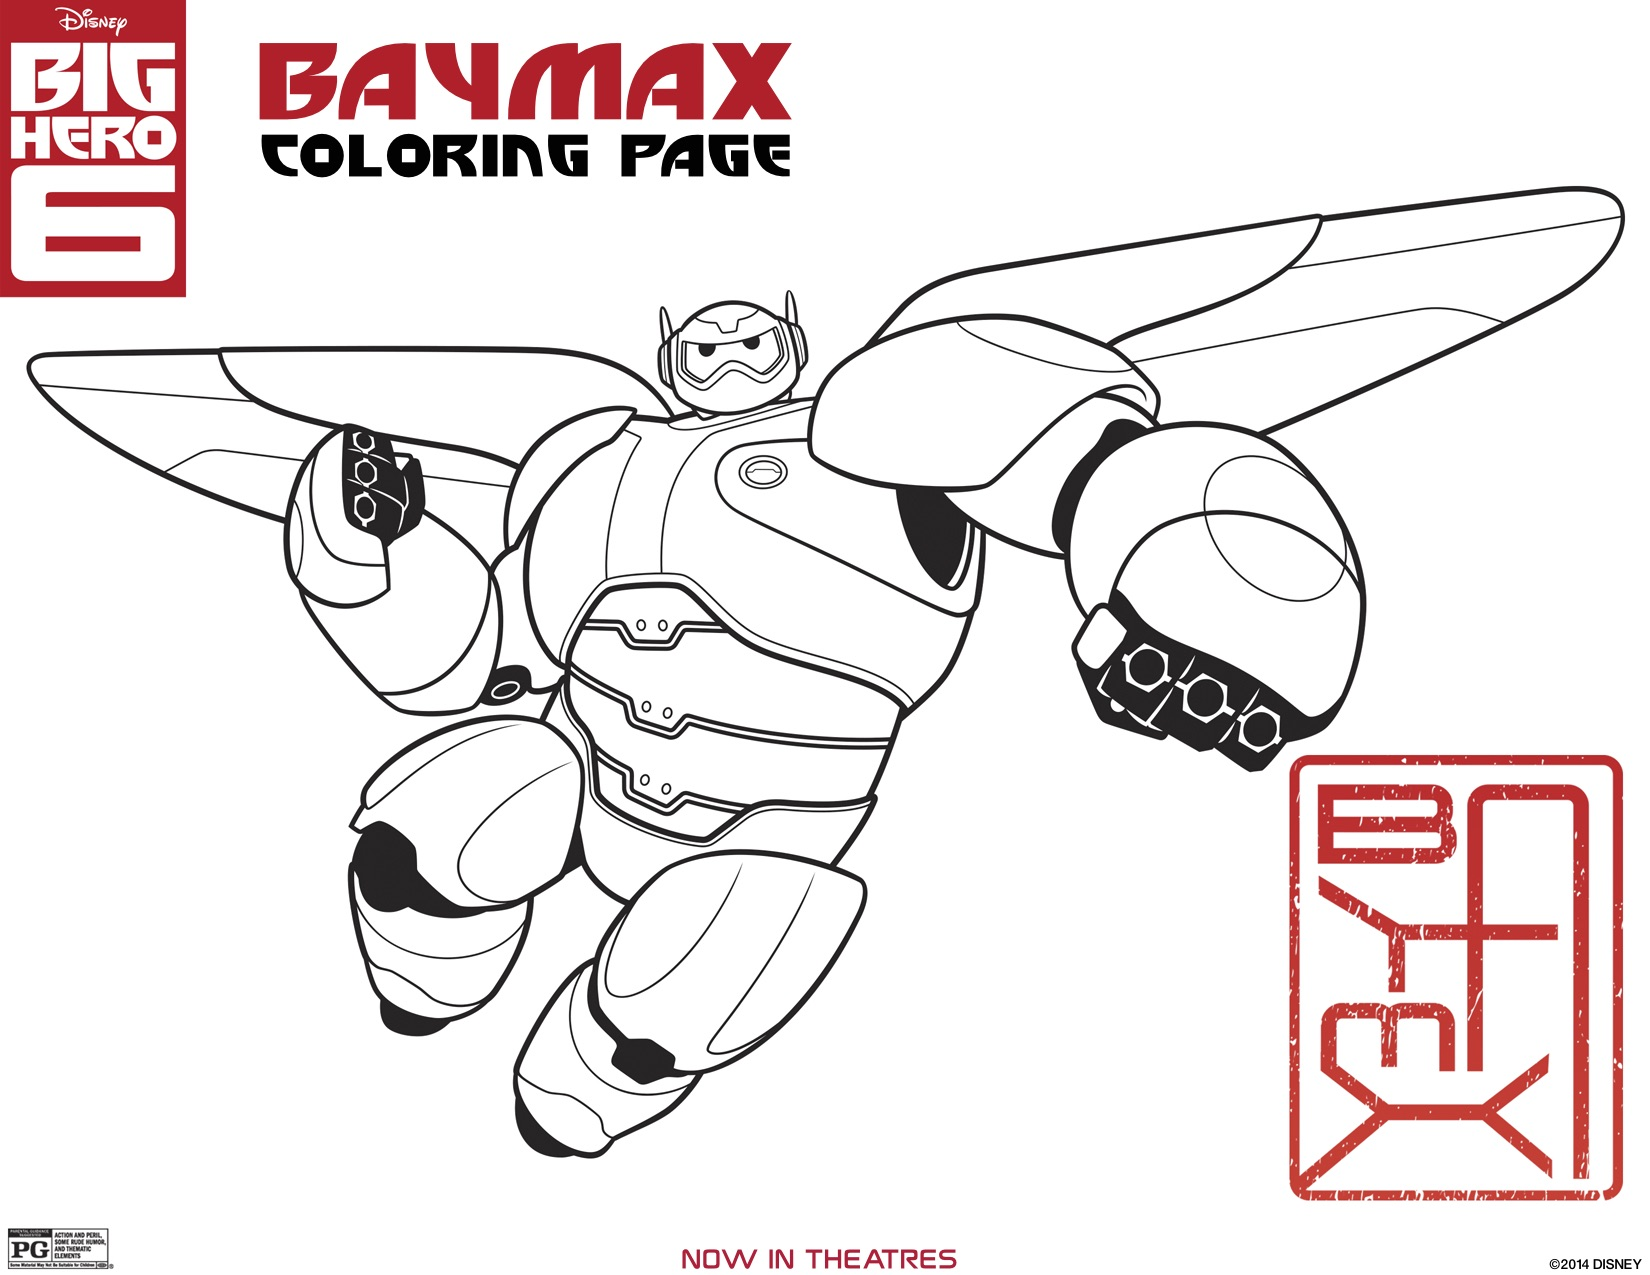 BIG HERO 6 - New Activity Sheets & Coloring Pages Now Available